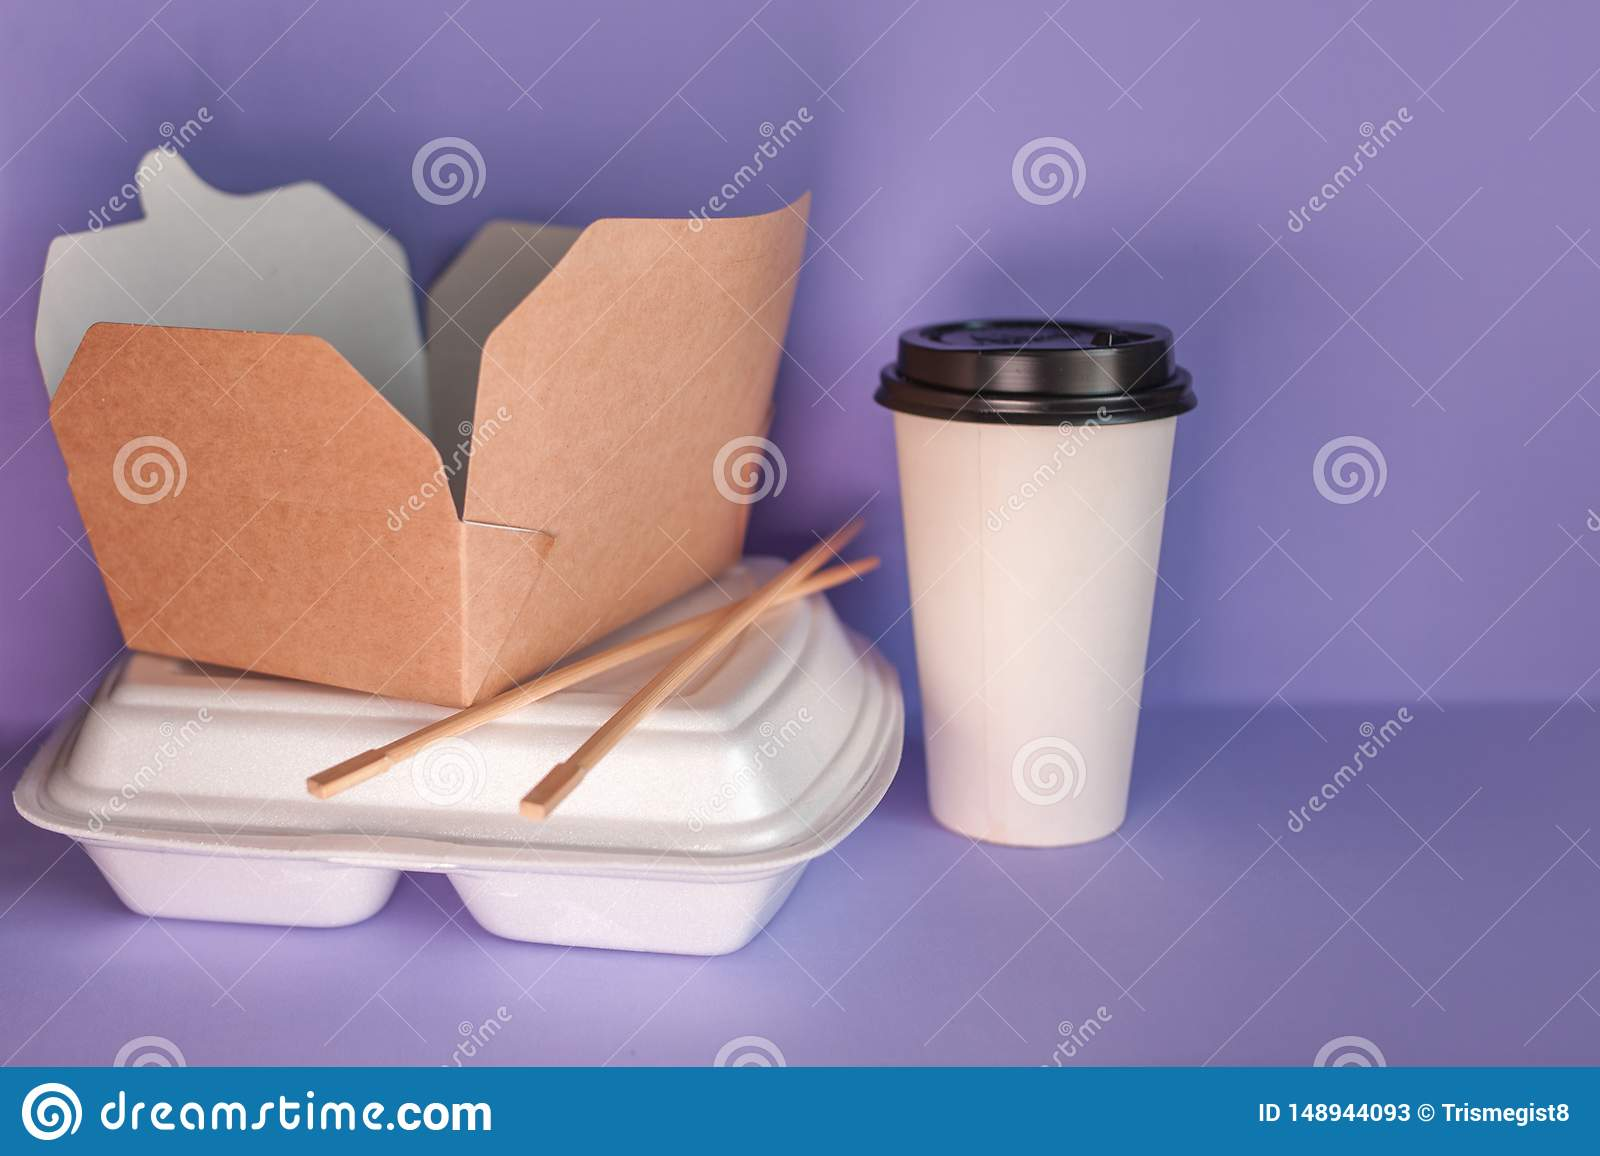 Food delivery service from restaurants and cafes. takeaway food containers.